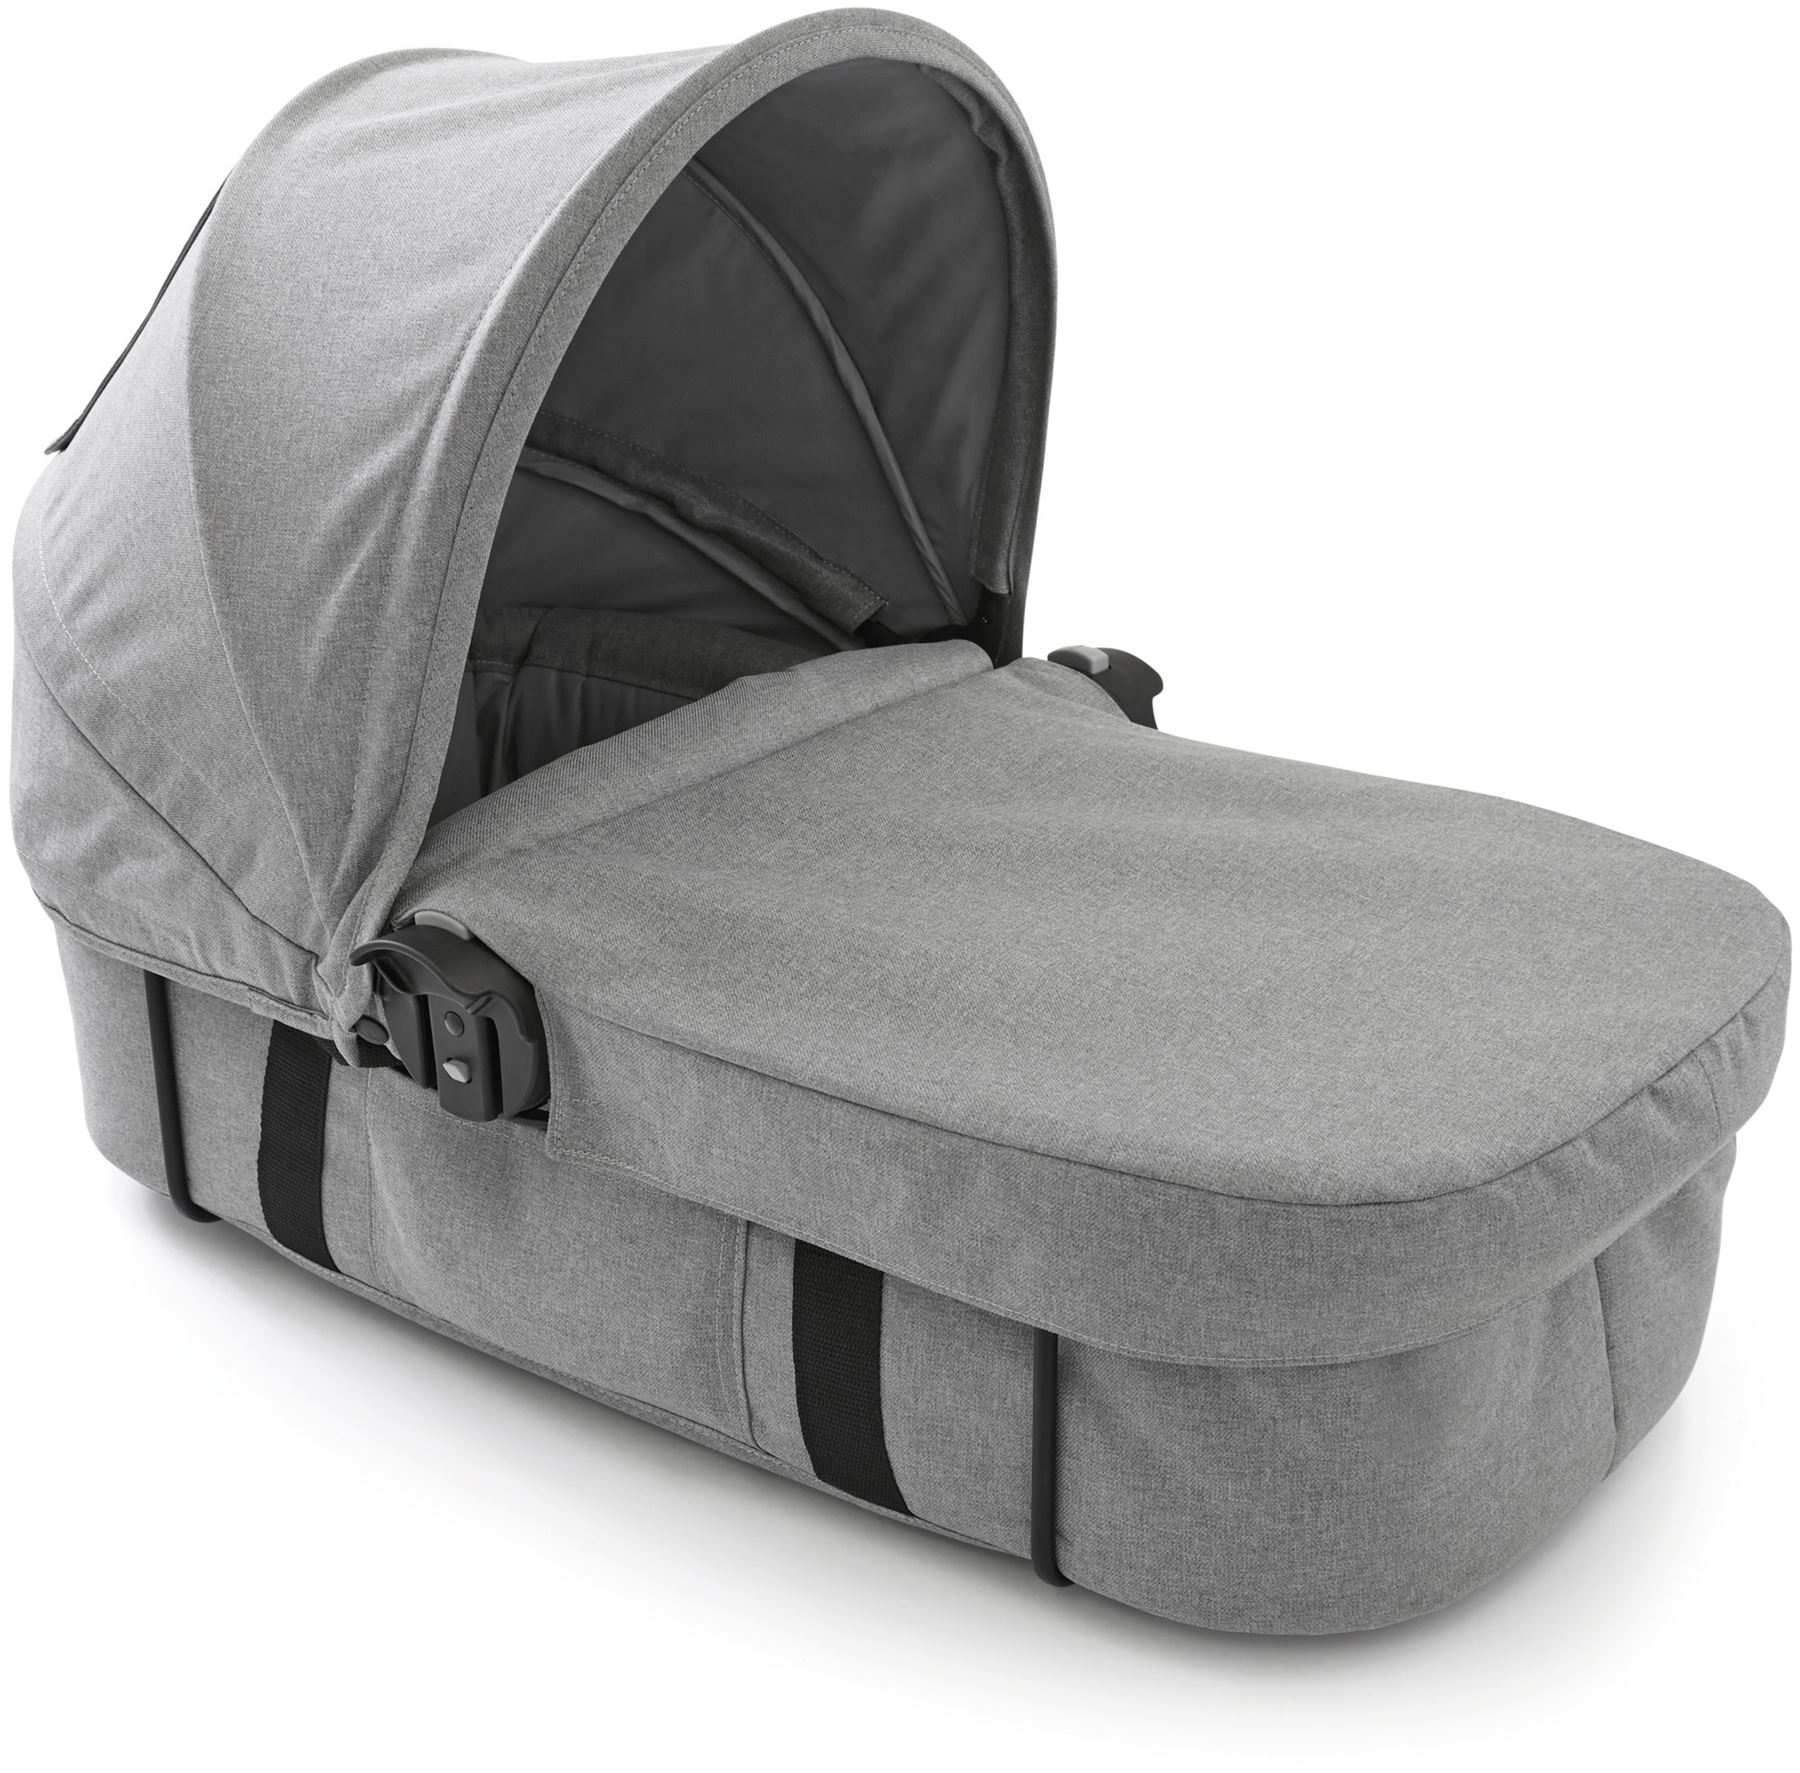 Details About Baby Jogger City Select Lux Carrycot Kit Slate Pushchair Buggy Accessory Bn